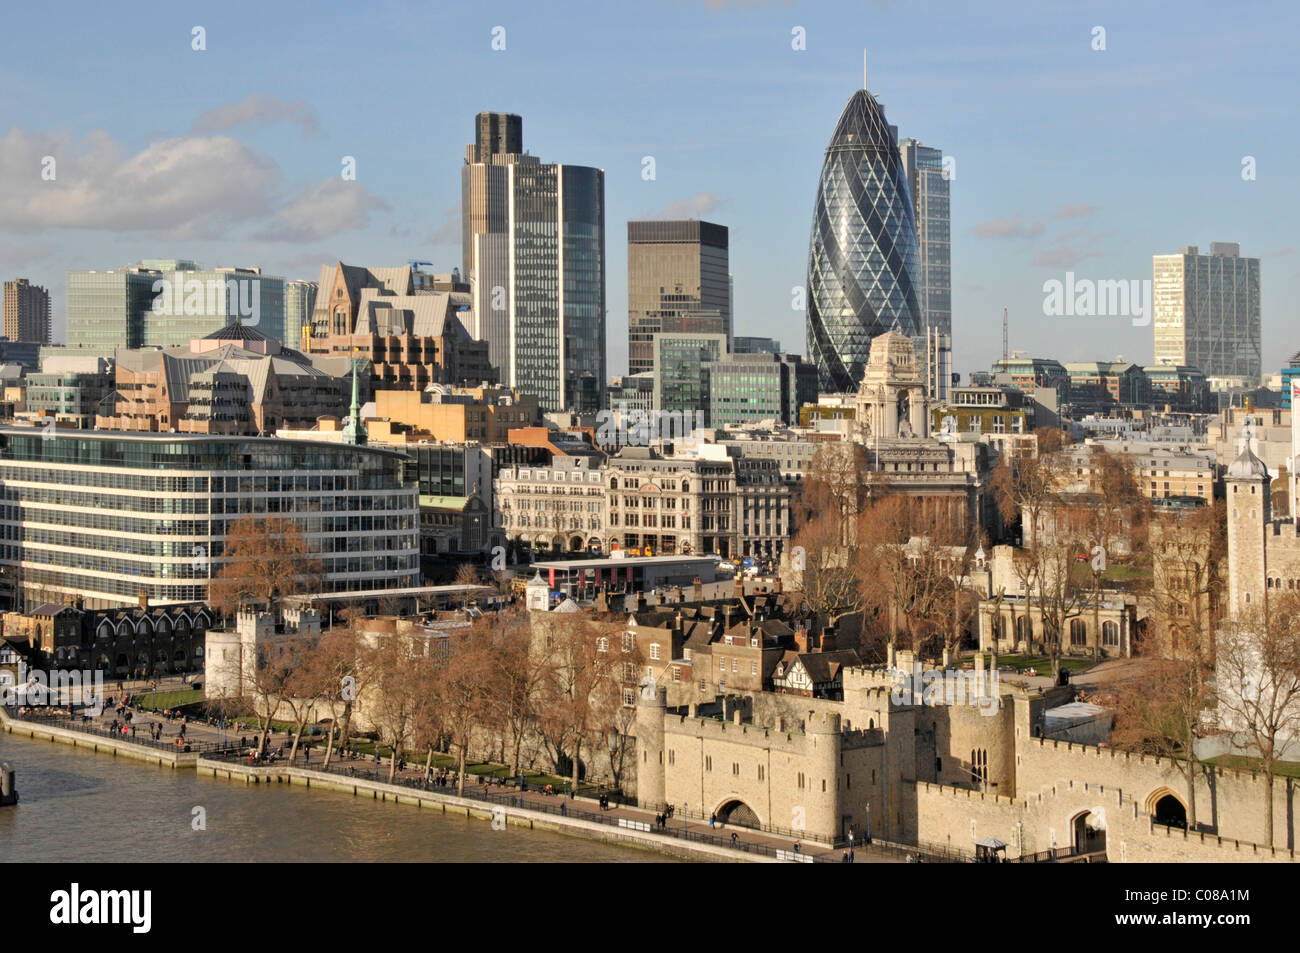 City of London skyline and The Tower of London - Stock Image